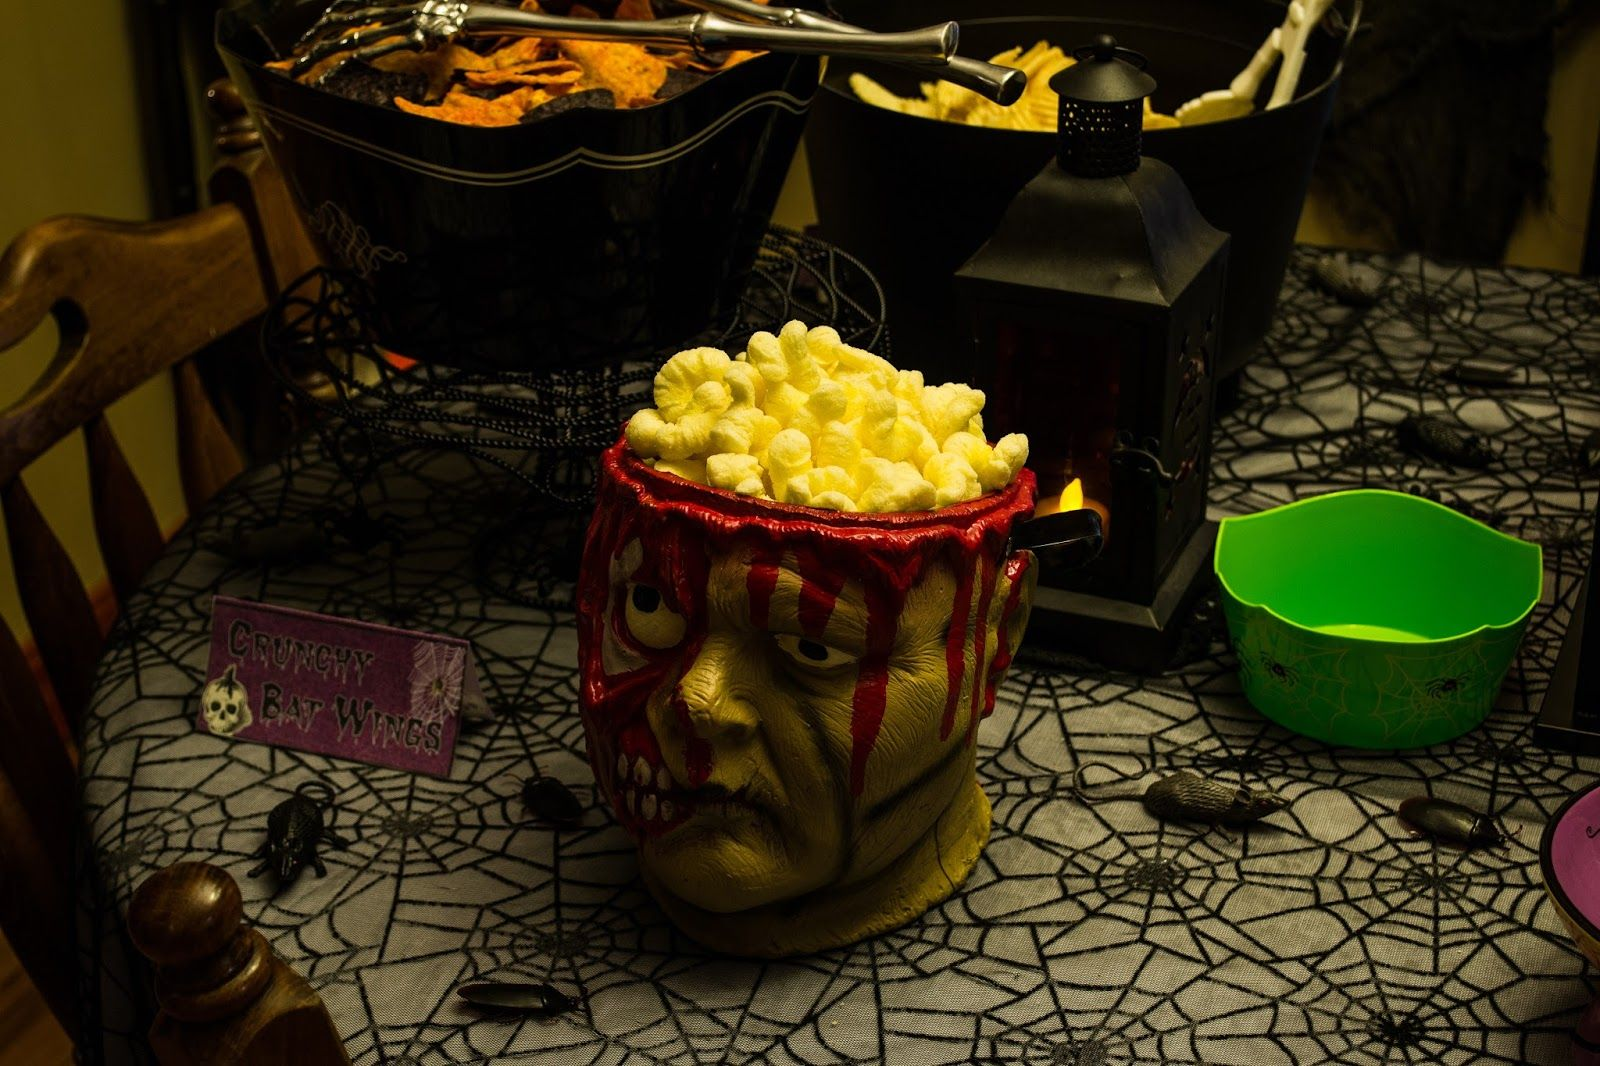 Hot buttered brains anyone? Something wicKED this way comes....: The wicKED weeKEnD Halloween Party of 2014